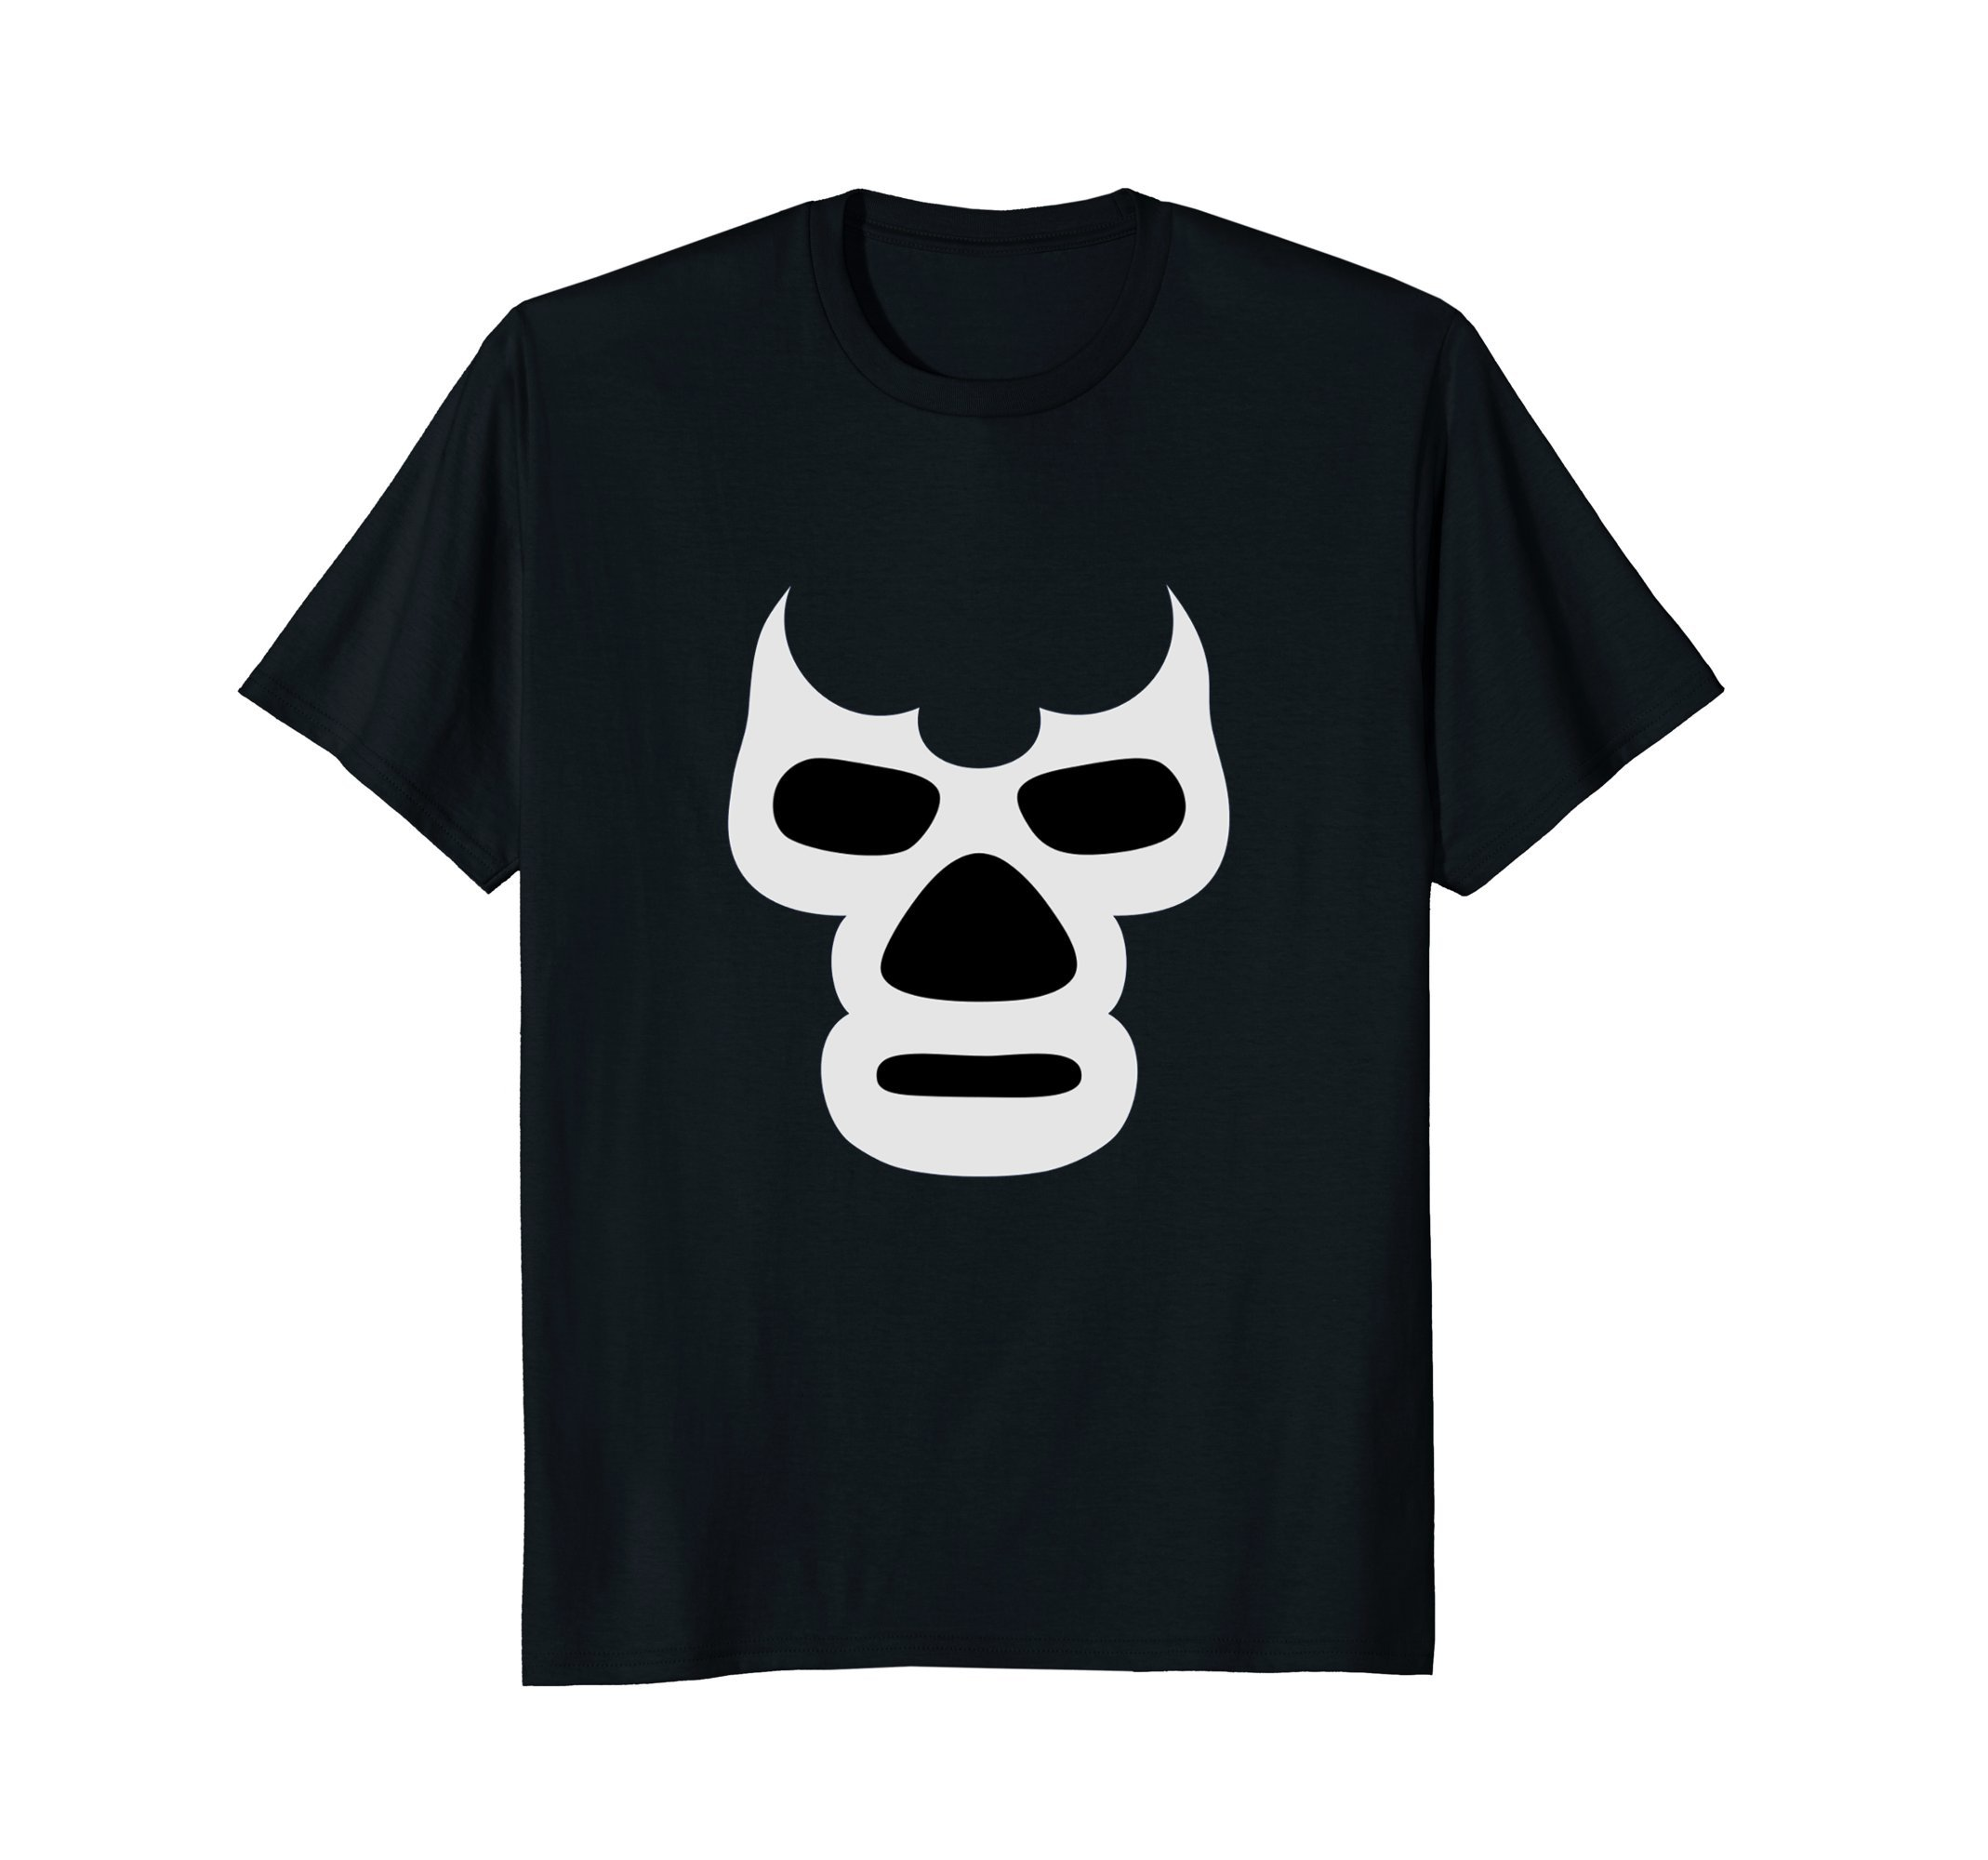 Mens Lucha Libre Face T-Shirt - Mexican Wrestler Hero Style Tee XL Black by Mexican Wrestling Lucha Tees